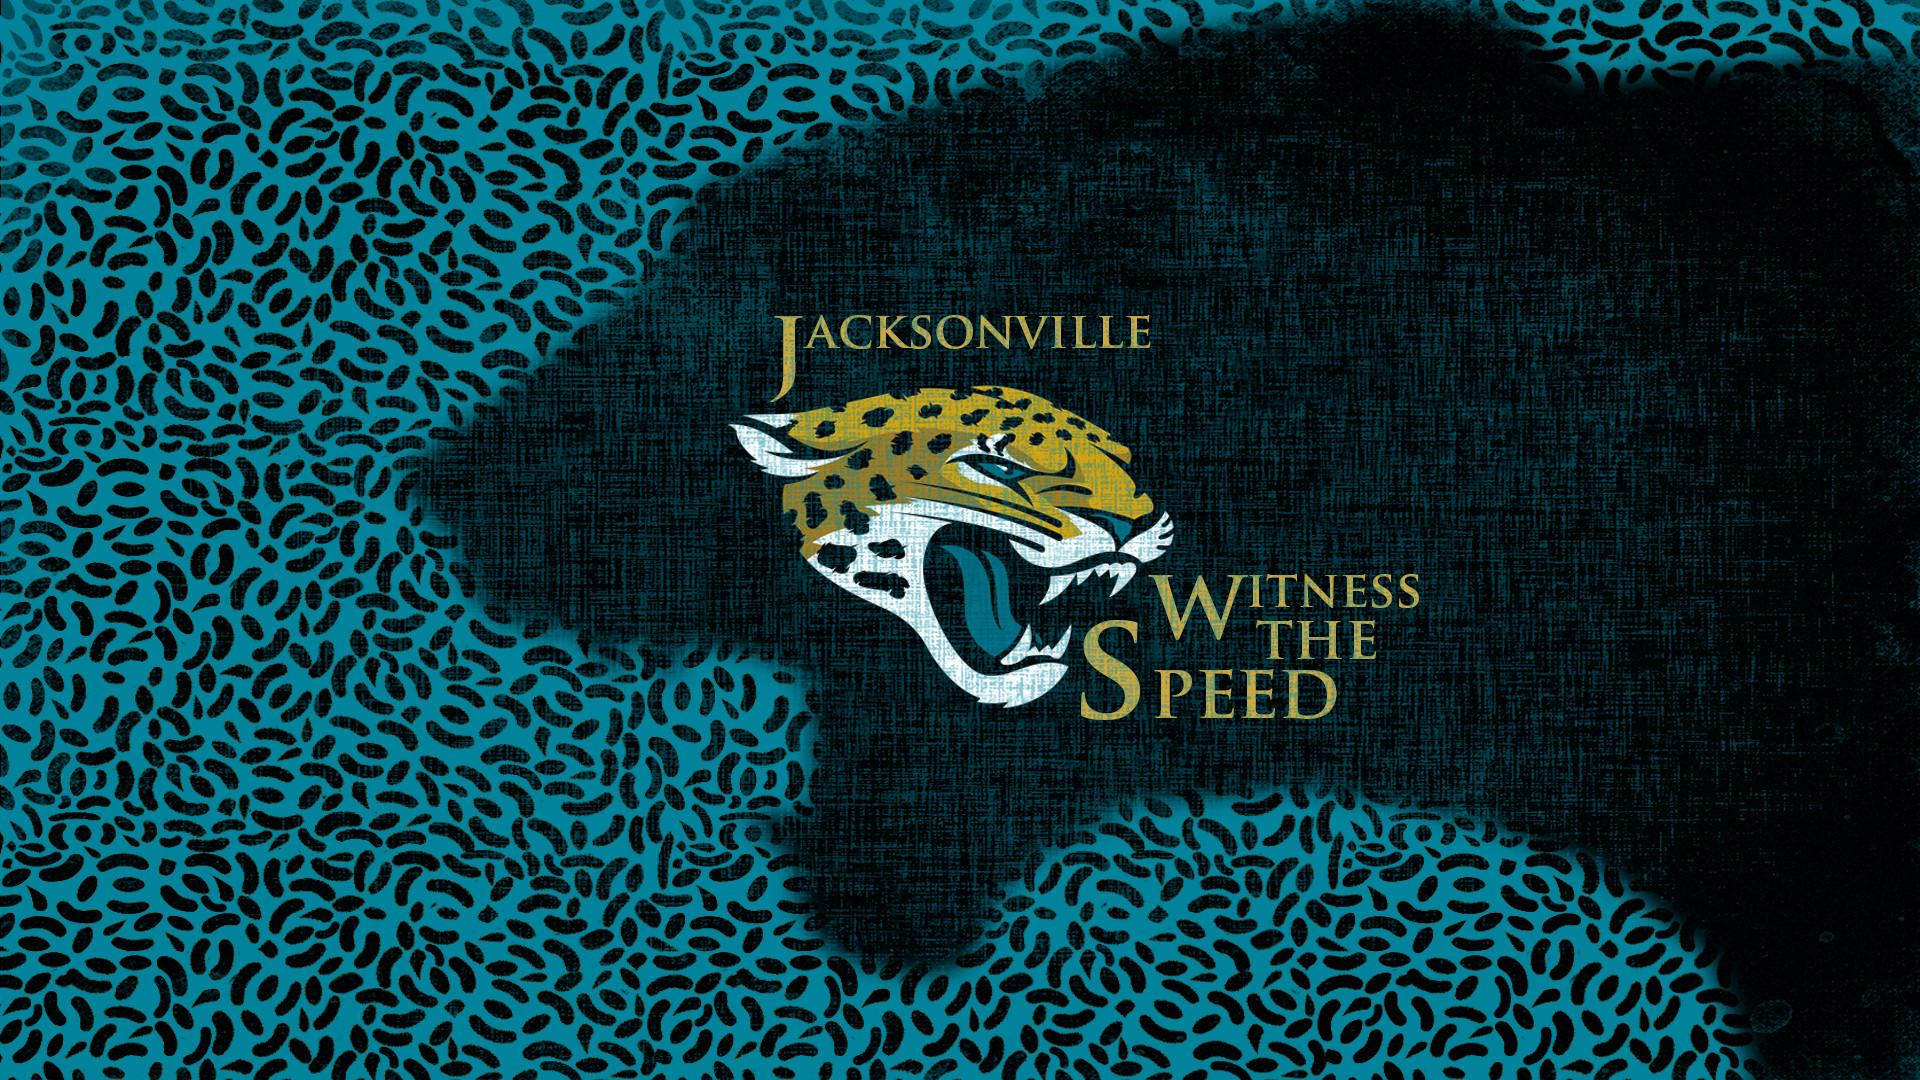 the latest jacksonville jaguars news sportspyder pictures to pin on. Cars Review. Best American Auto & Cars Review